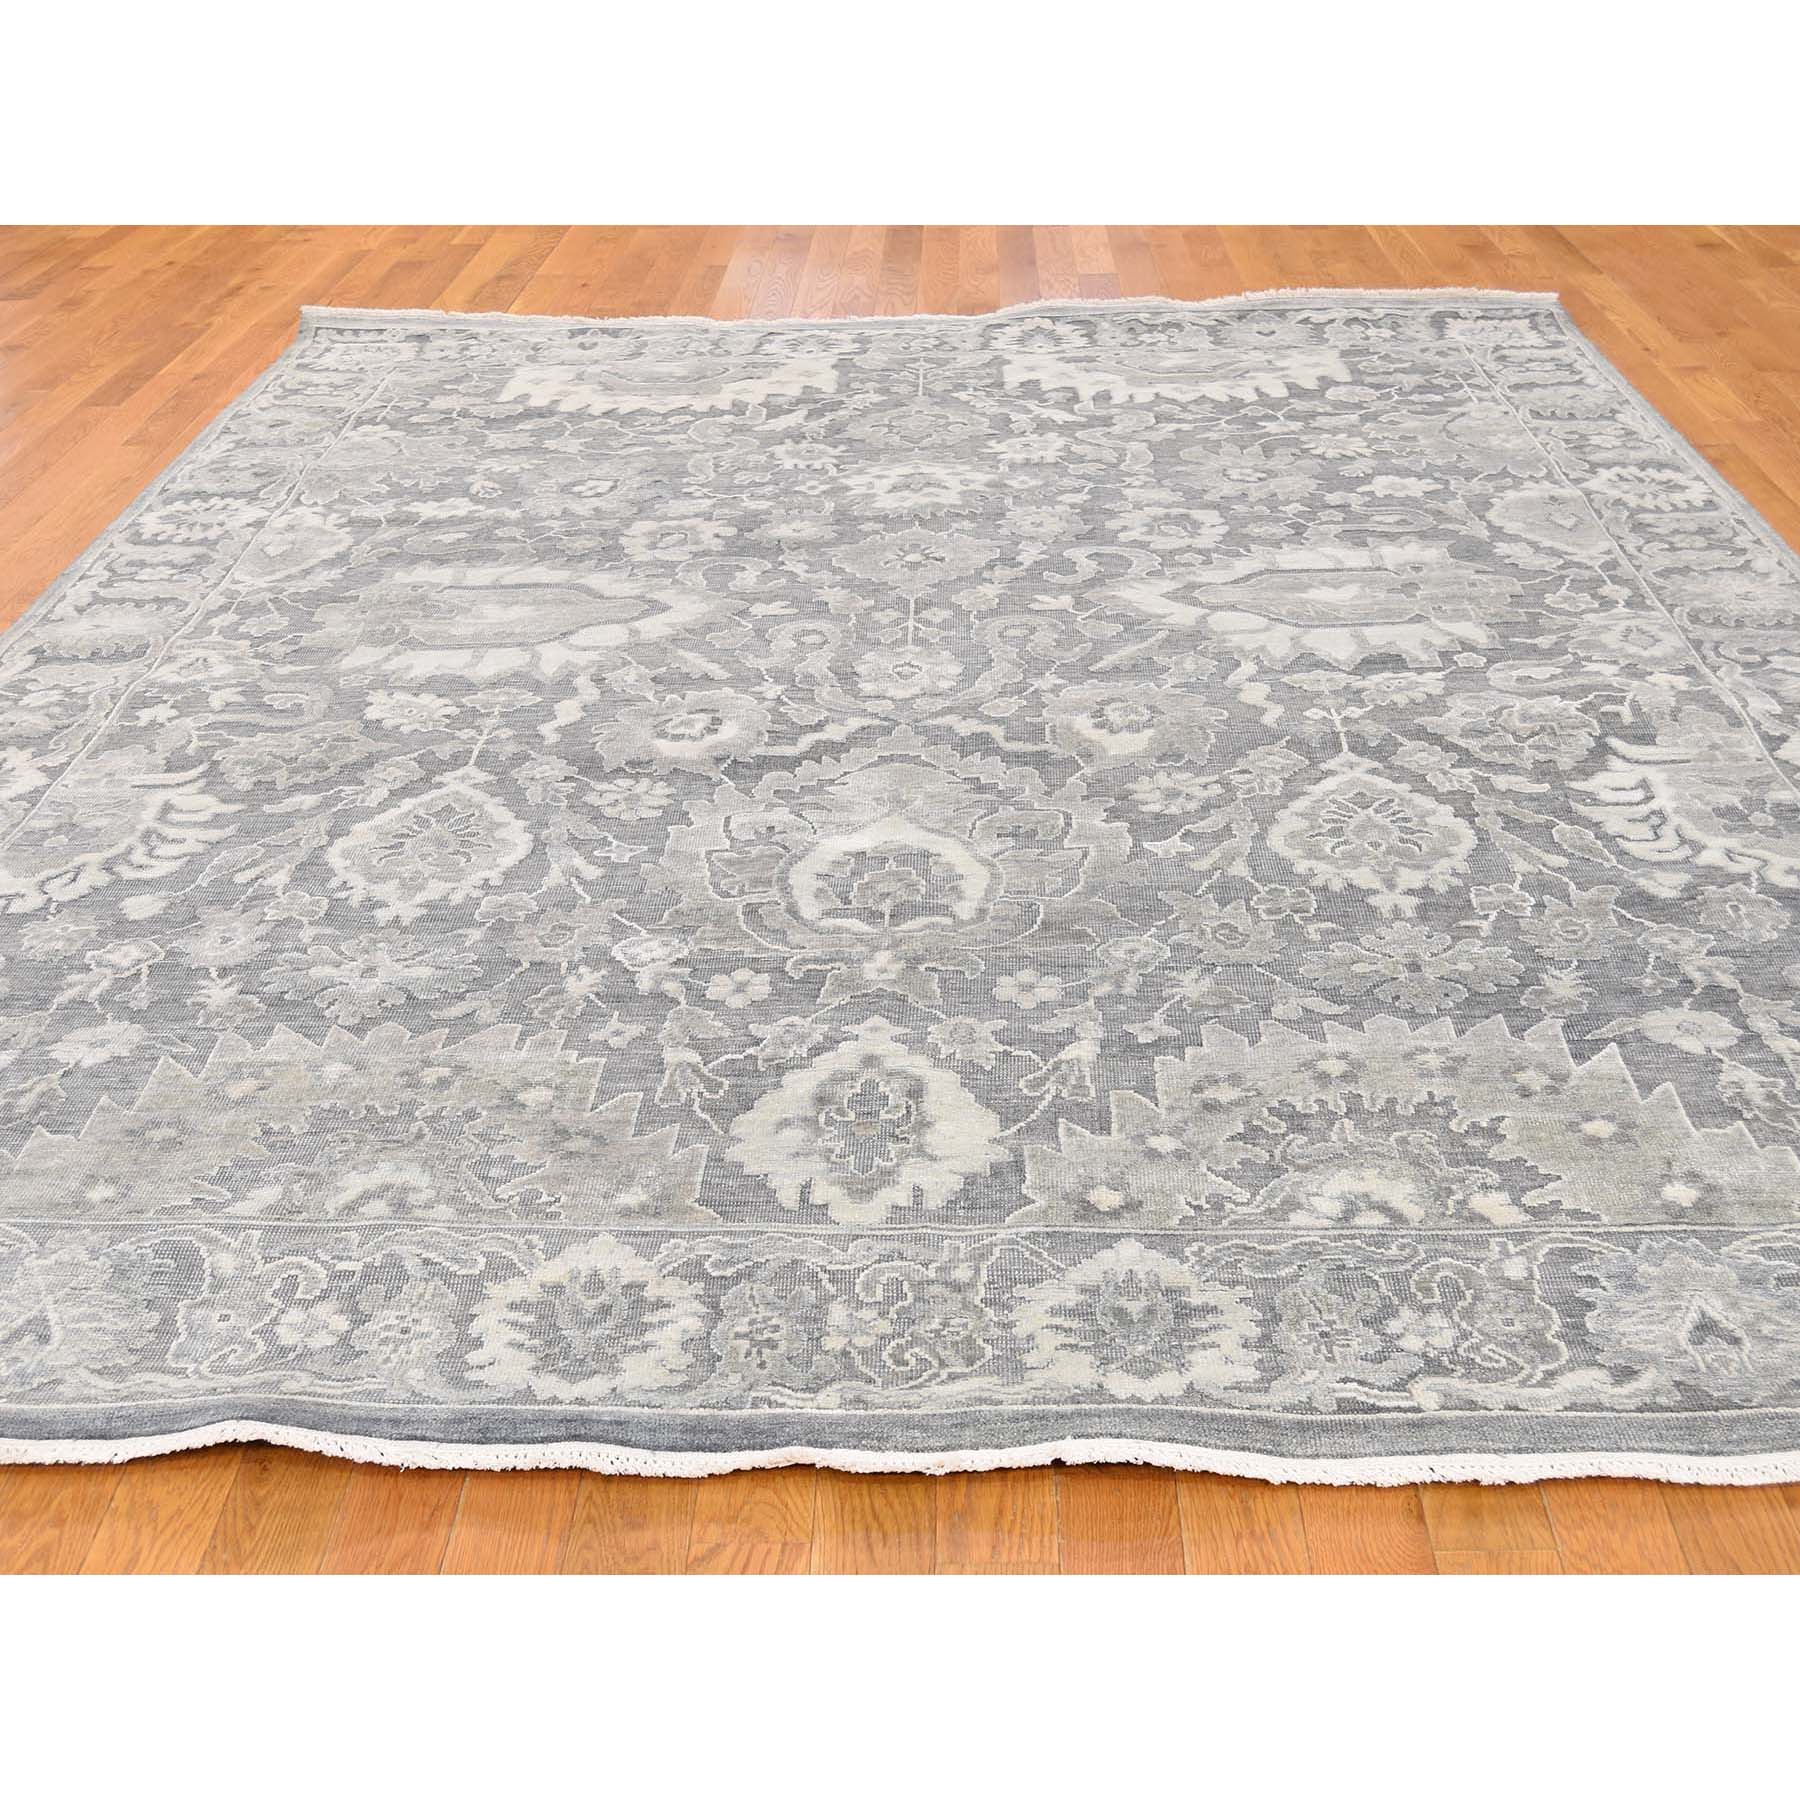 7-10 x10-2  Silk With Oxidized Wool Hand Knotted Oushak Influence Oriental Rug